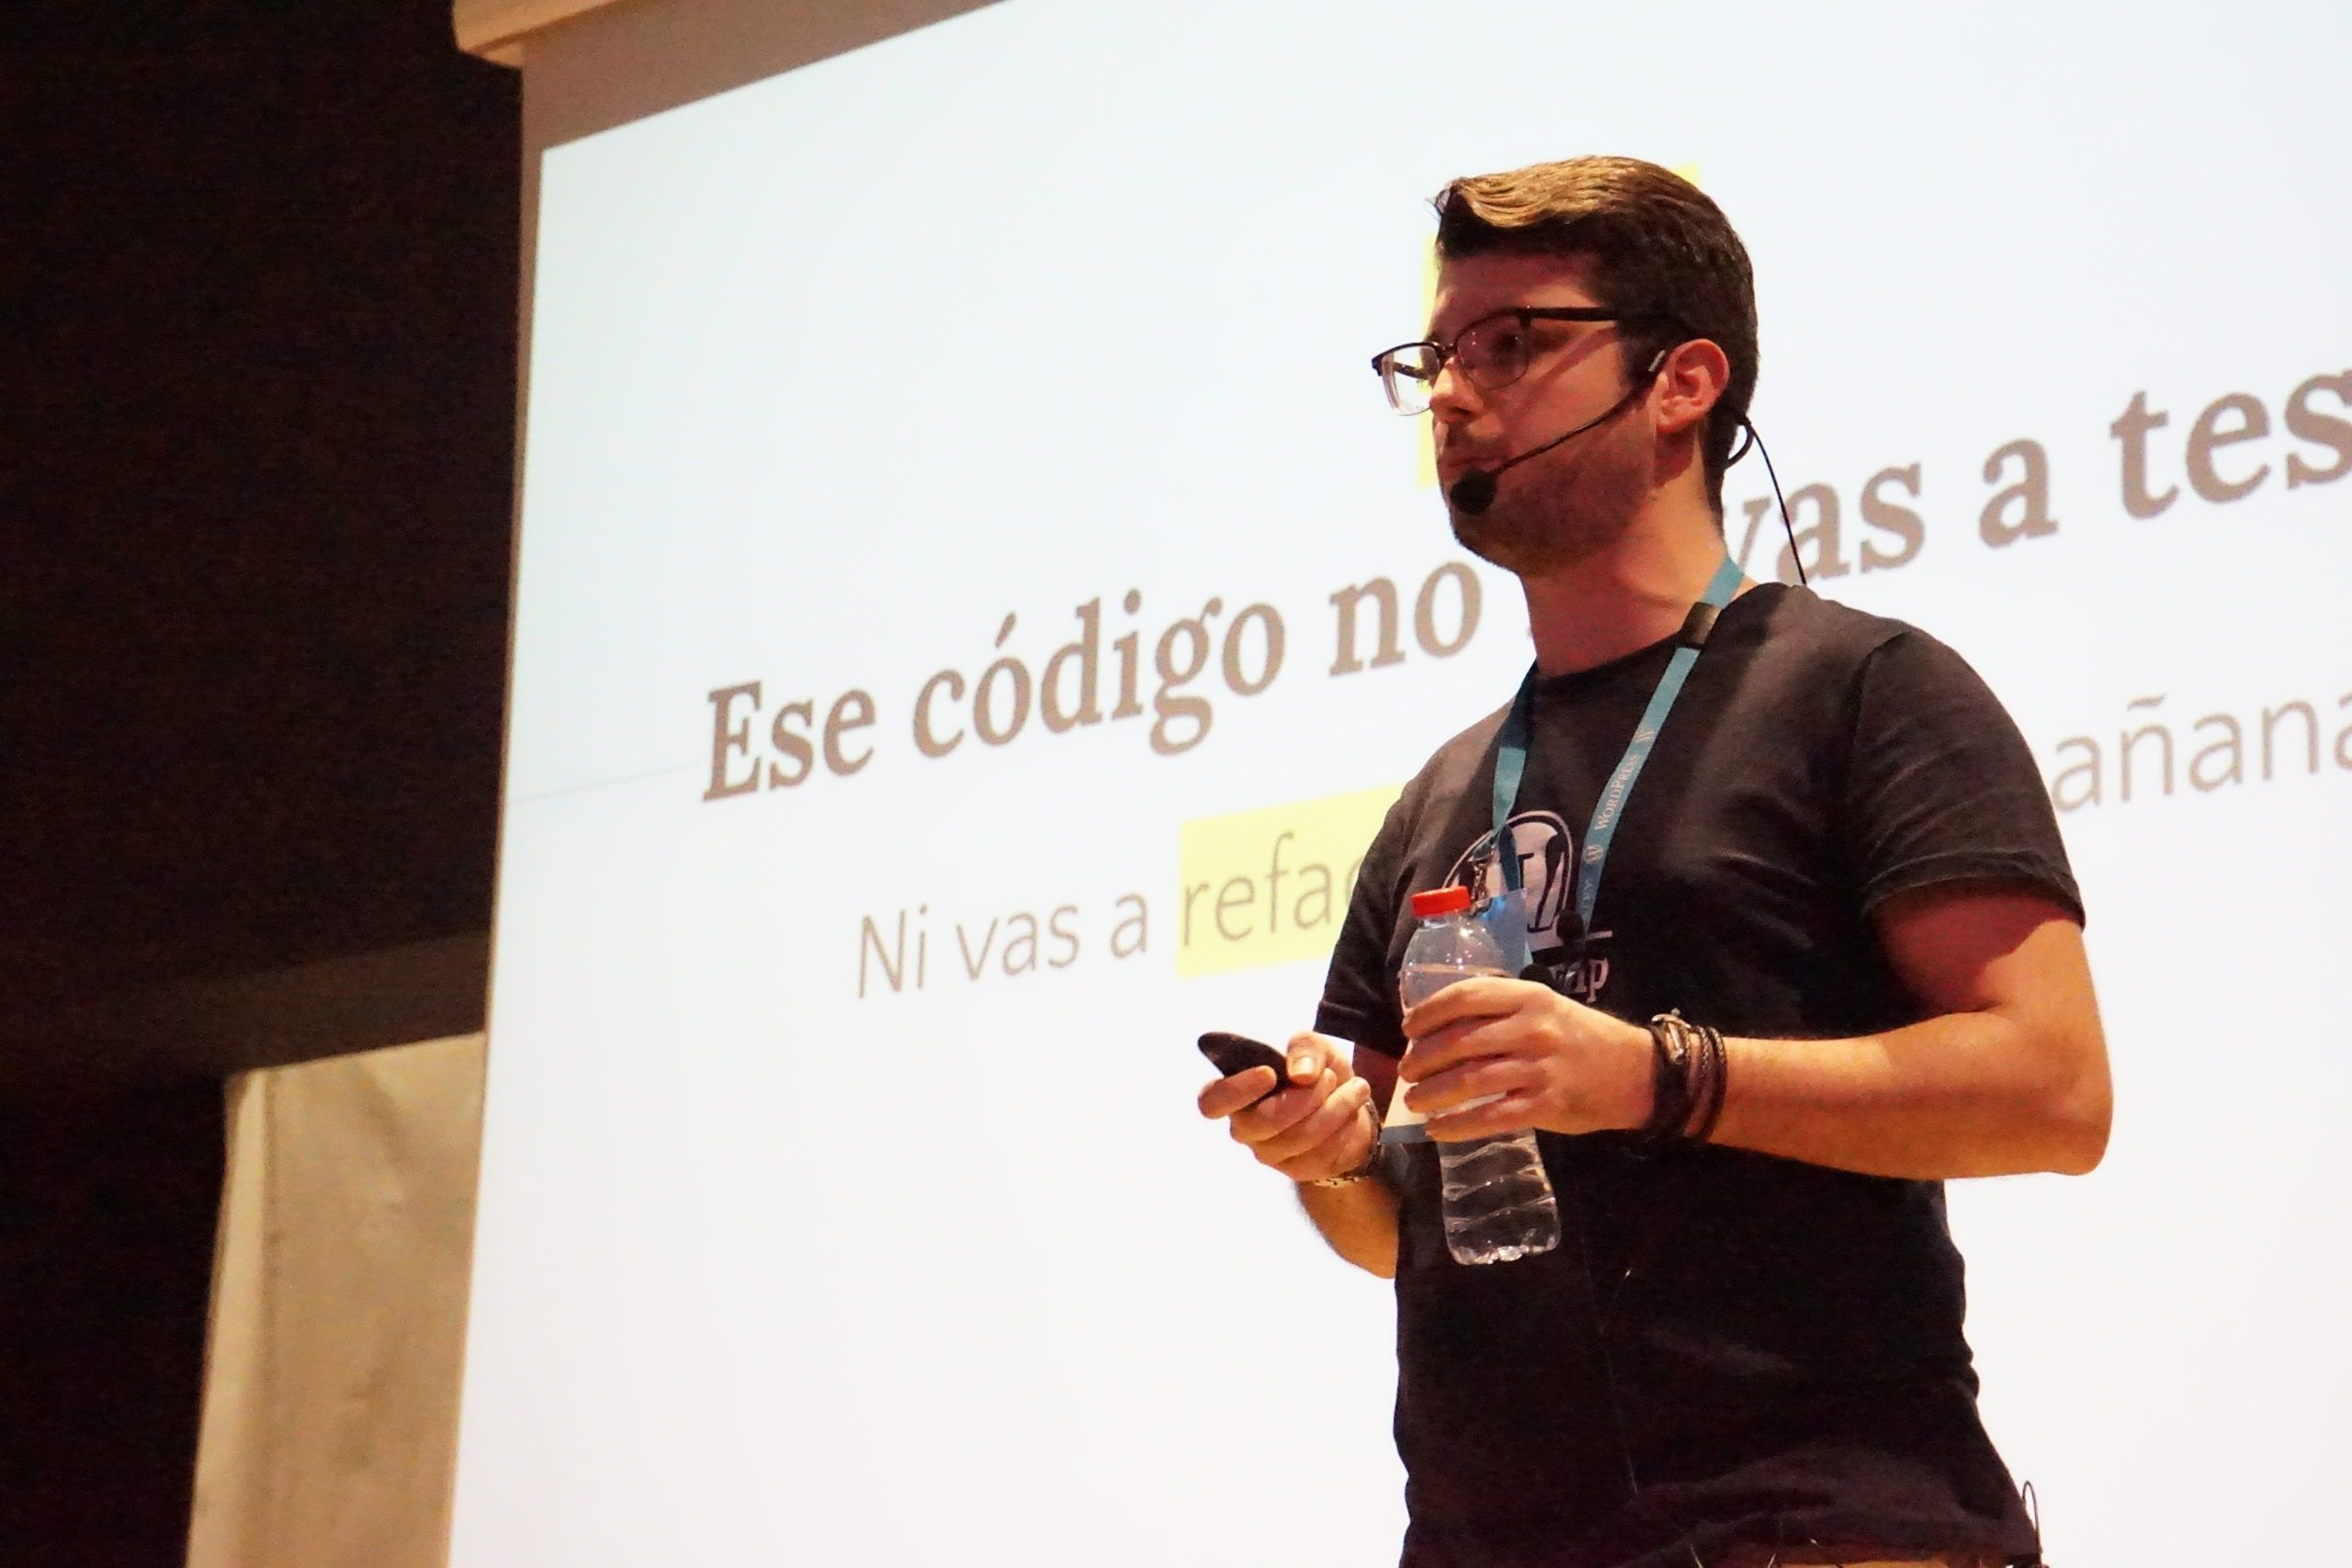 Santiago Alonso en la WordCamp Chiclana 2020